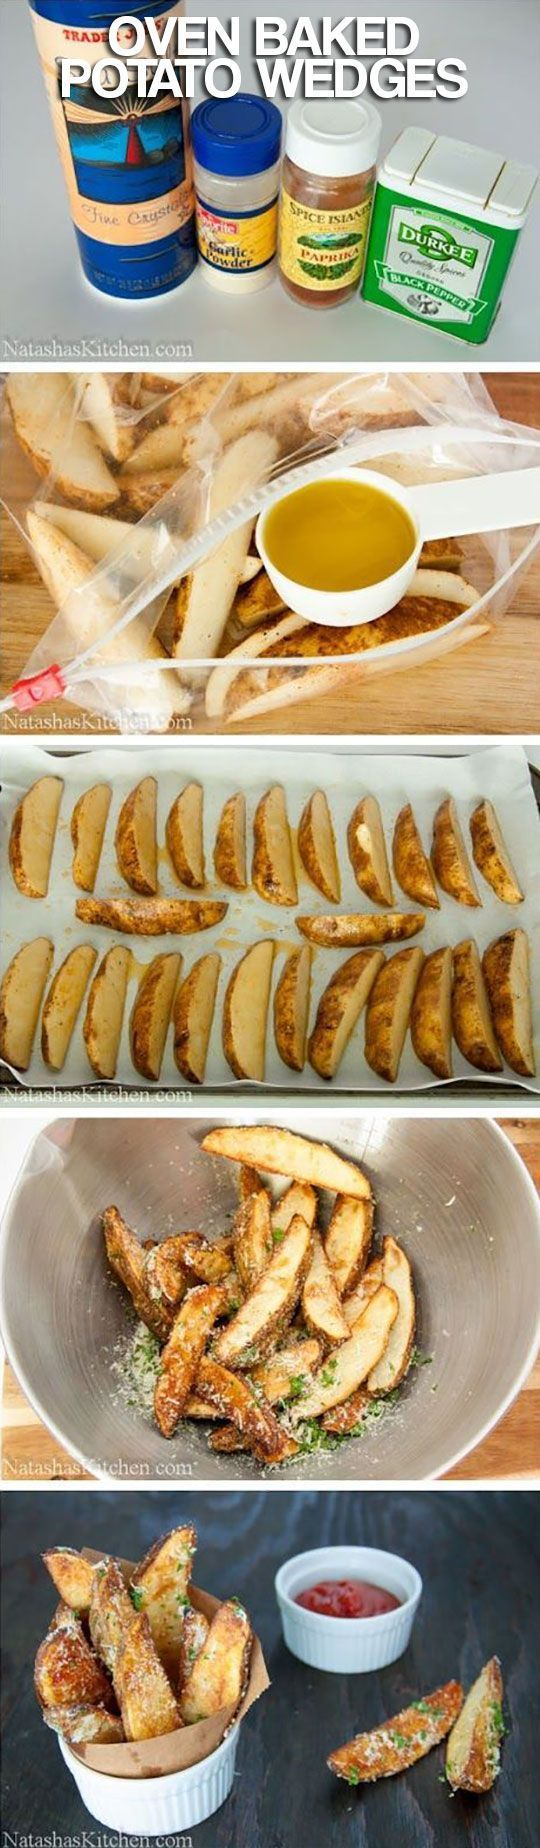 Oven baked potato wedges to die for… | Nosh-up